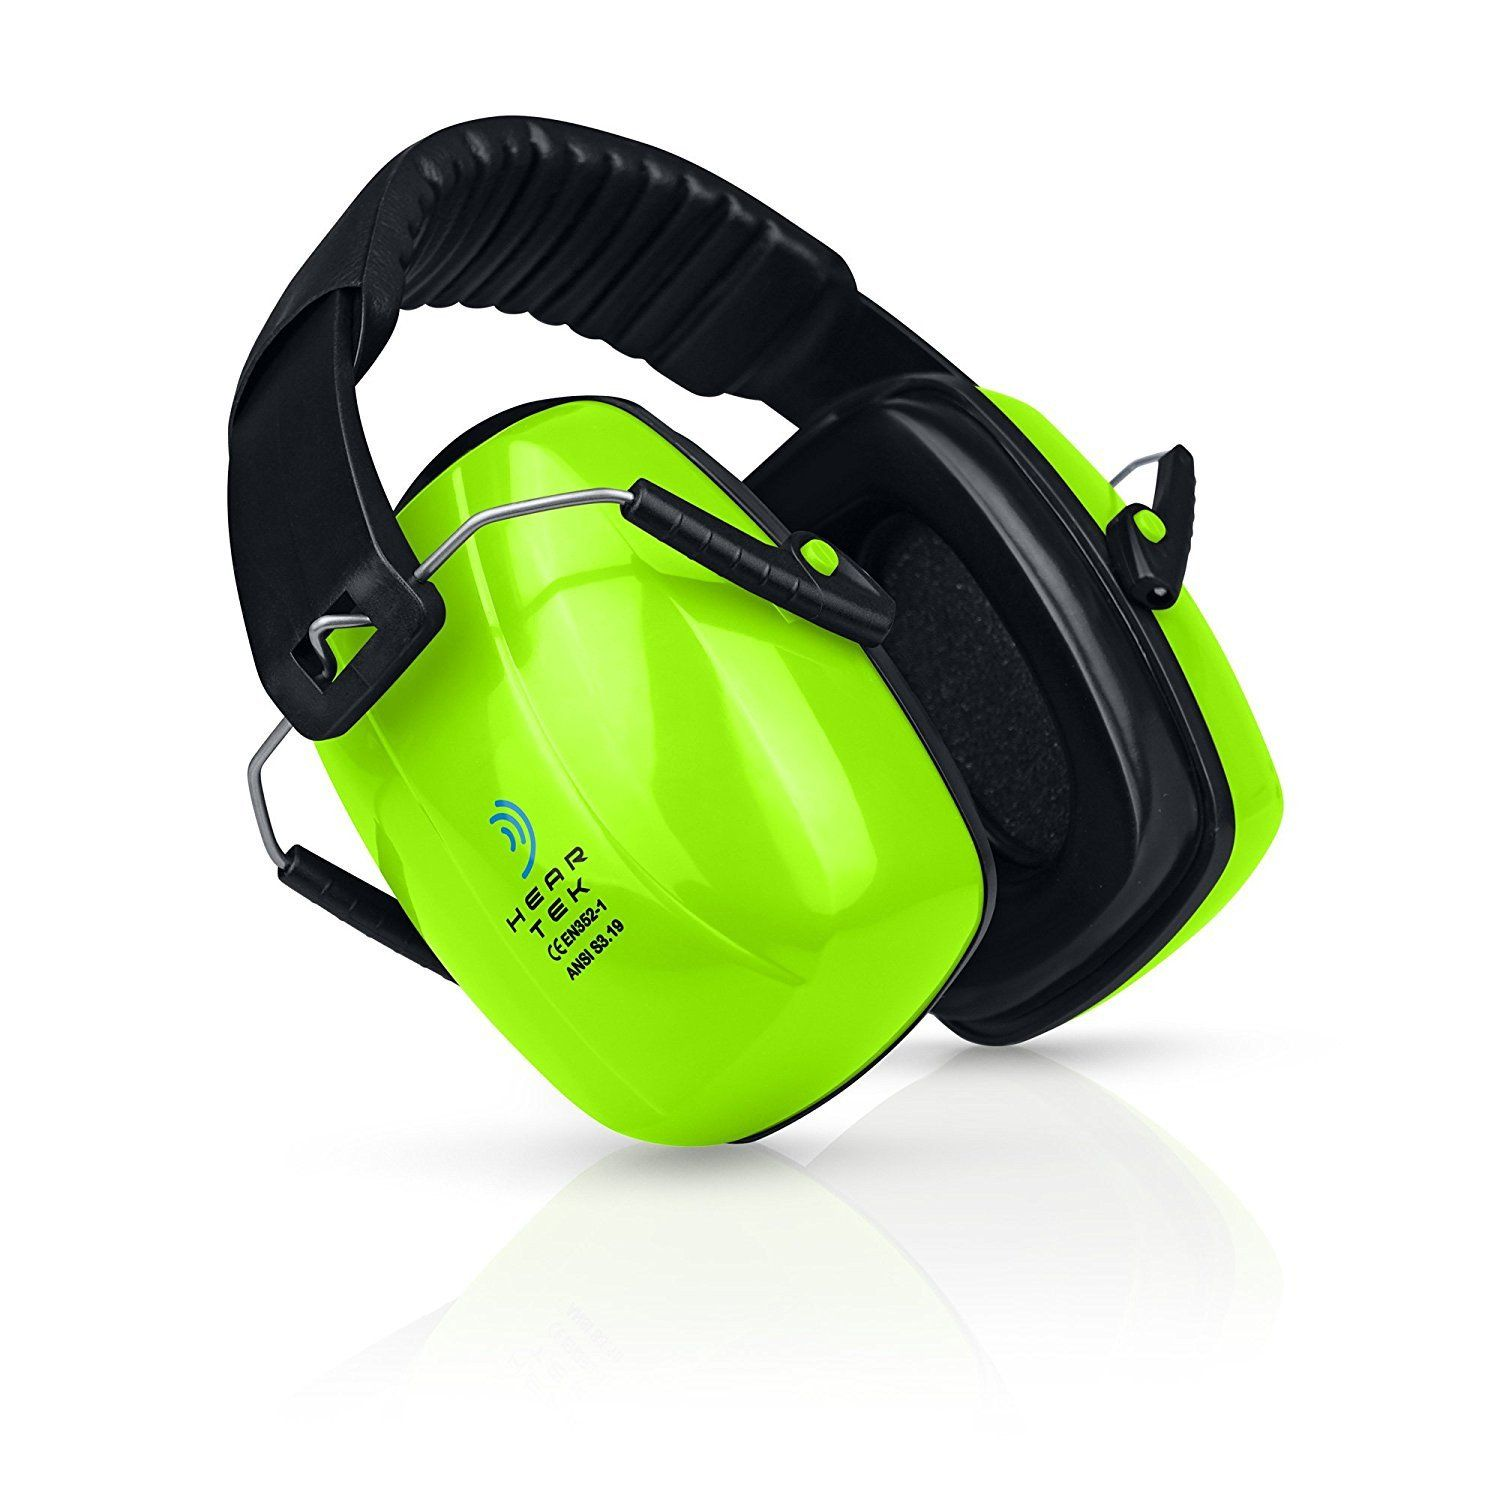 Safety Ear Muffs Adjustable Adult Size Noise Canceling Ear